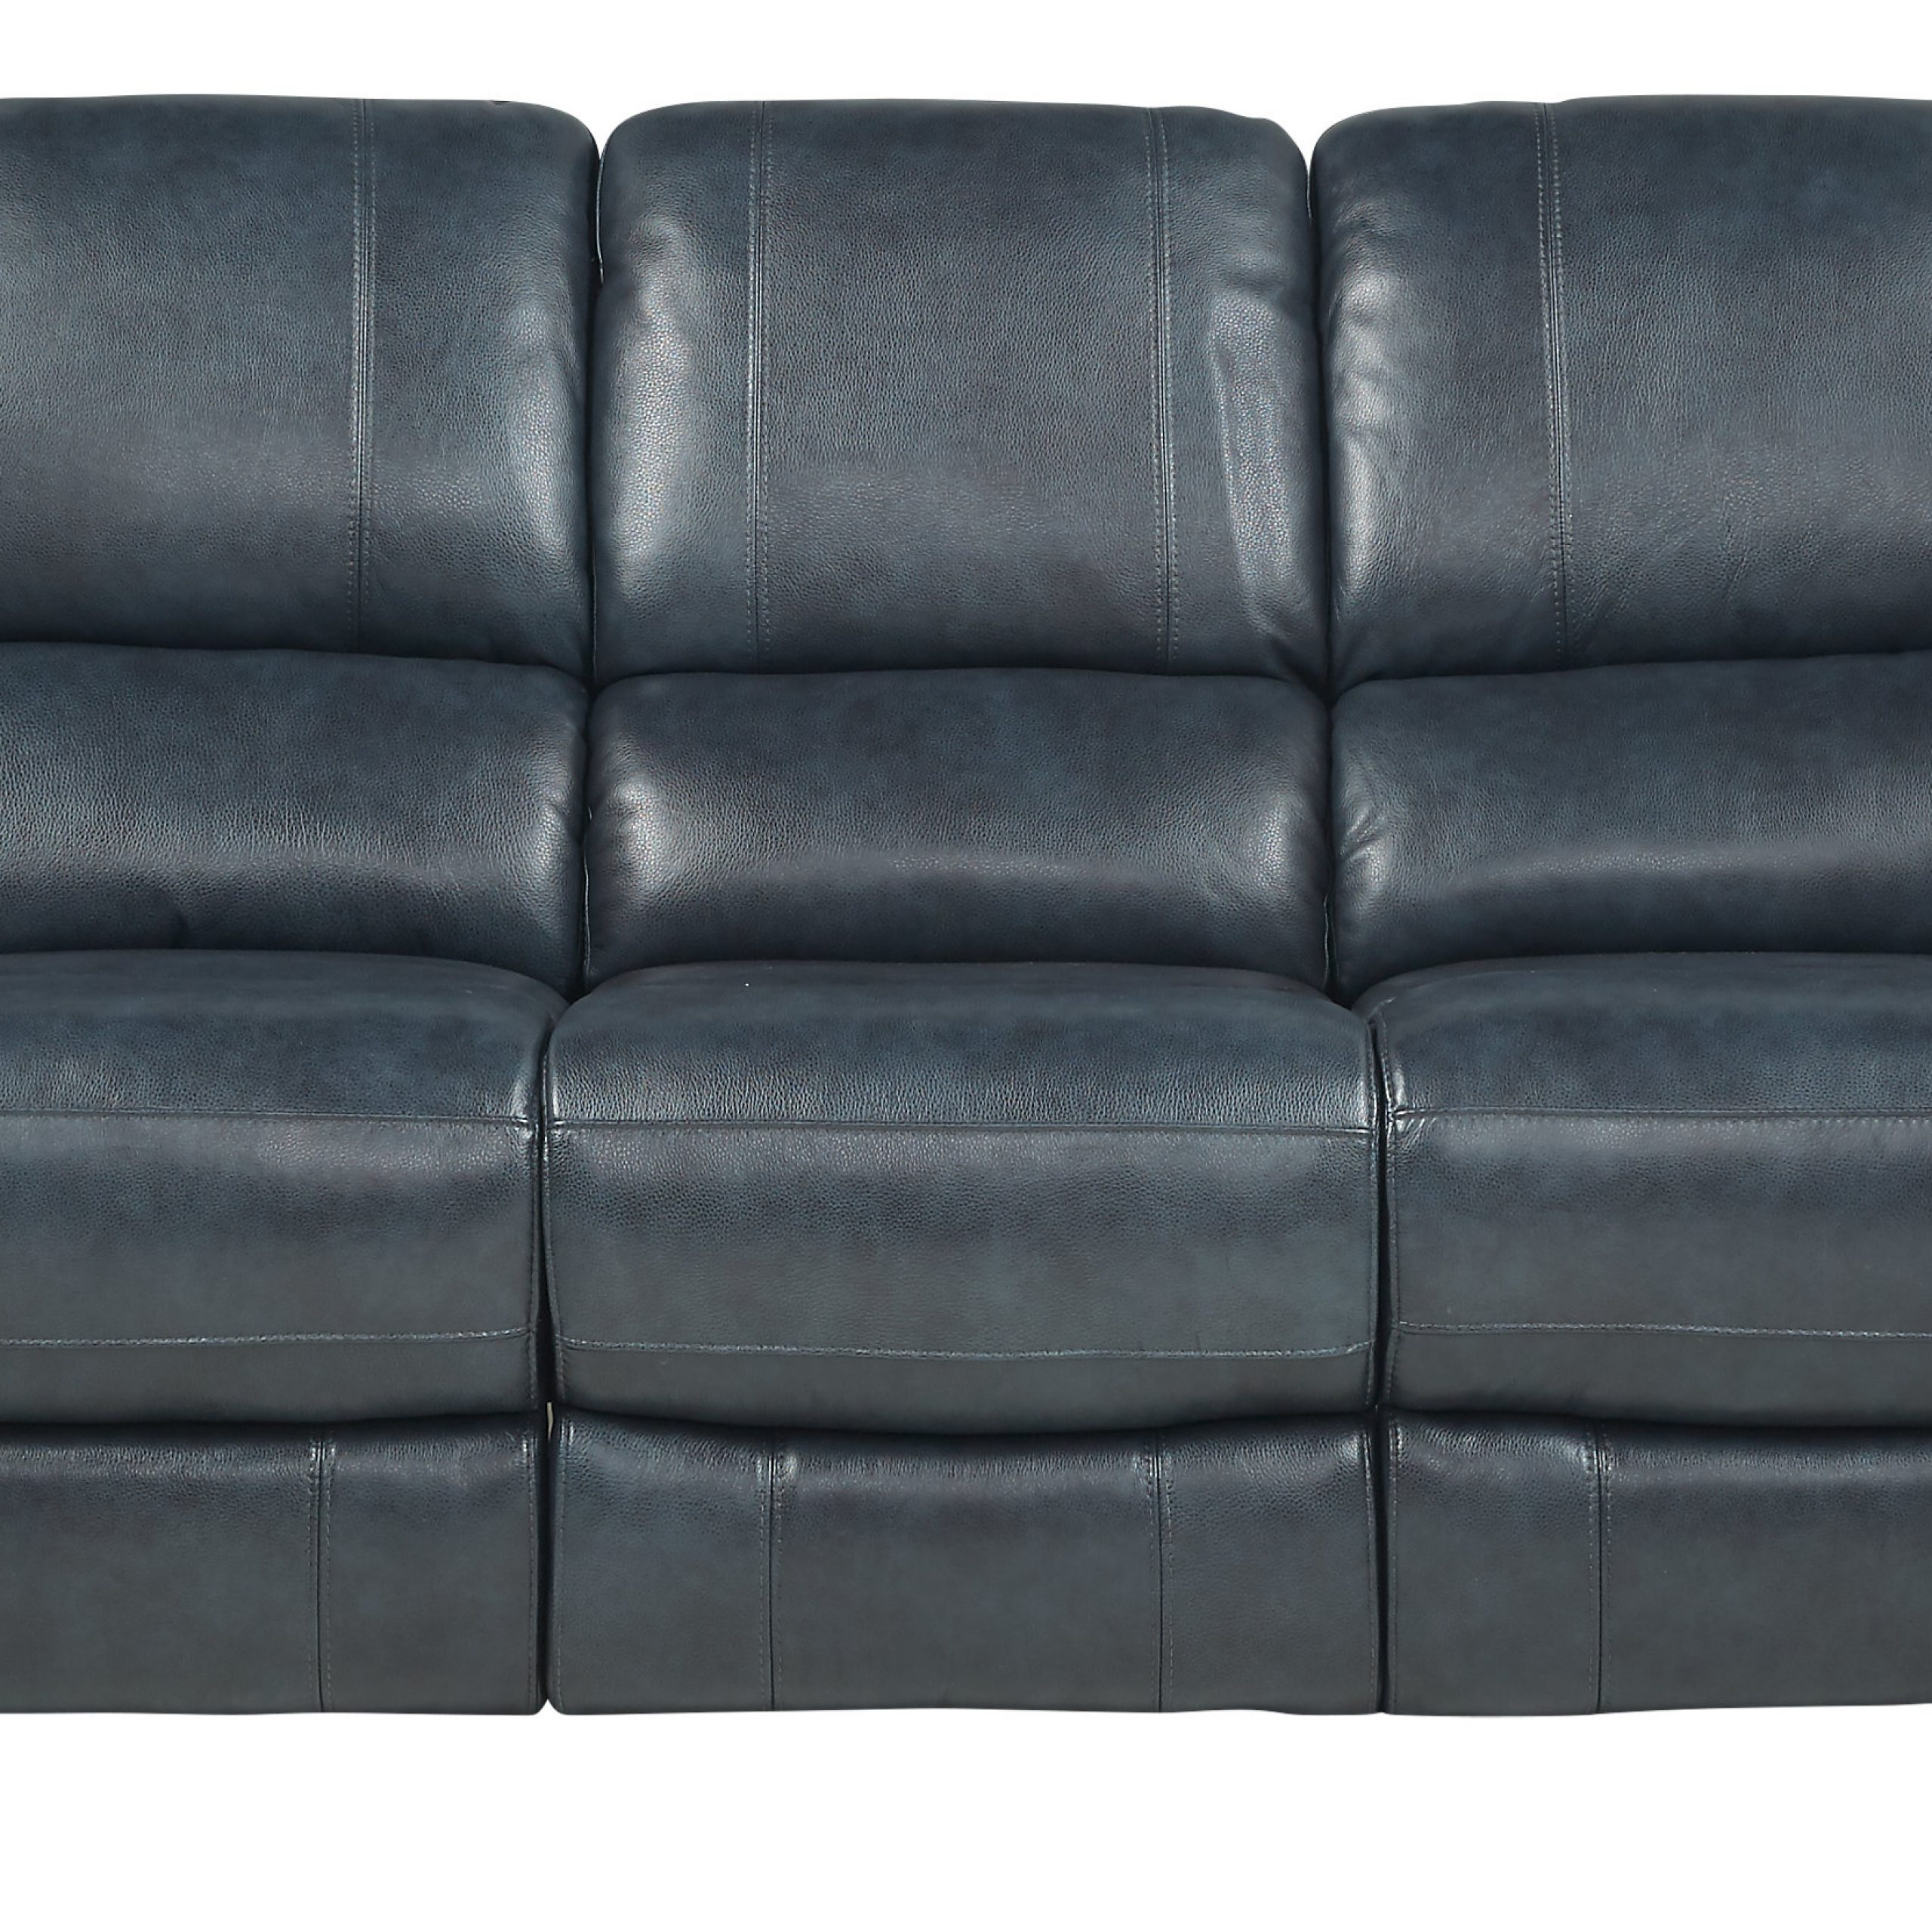 Frederickburg Blue Leather Power Reclining Sofa – Traditional, With Regard To Power Reclining Sofas (View 3 of 15)